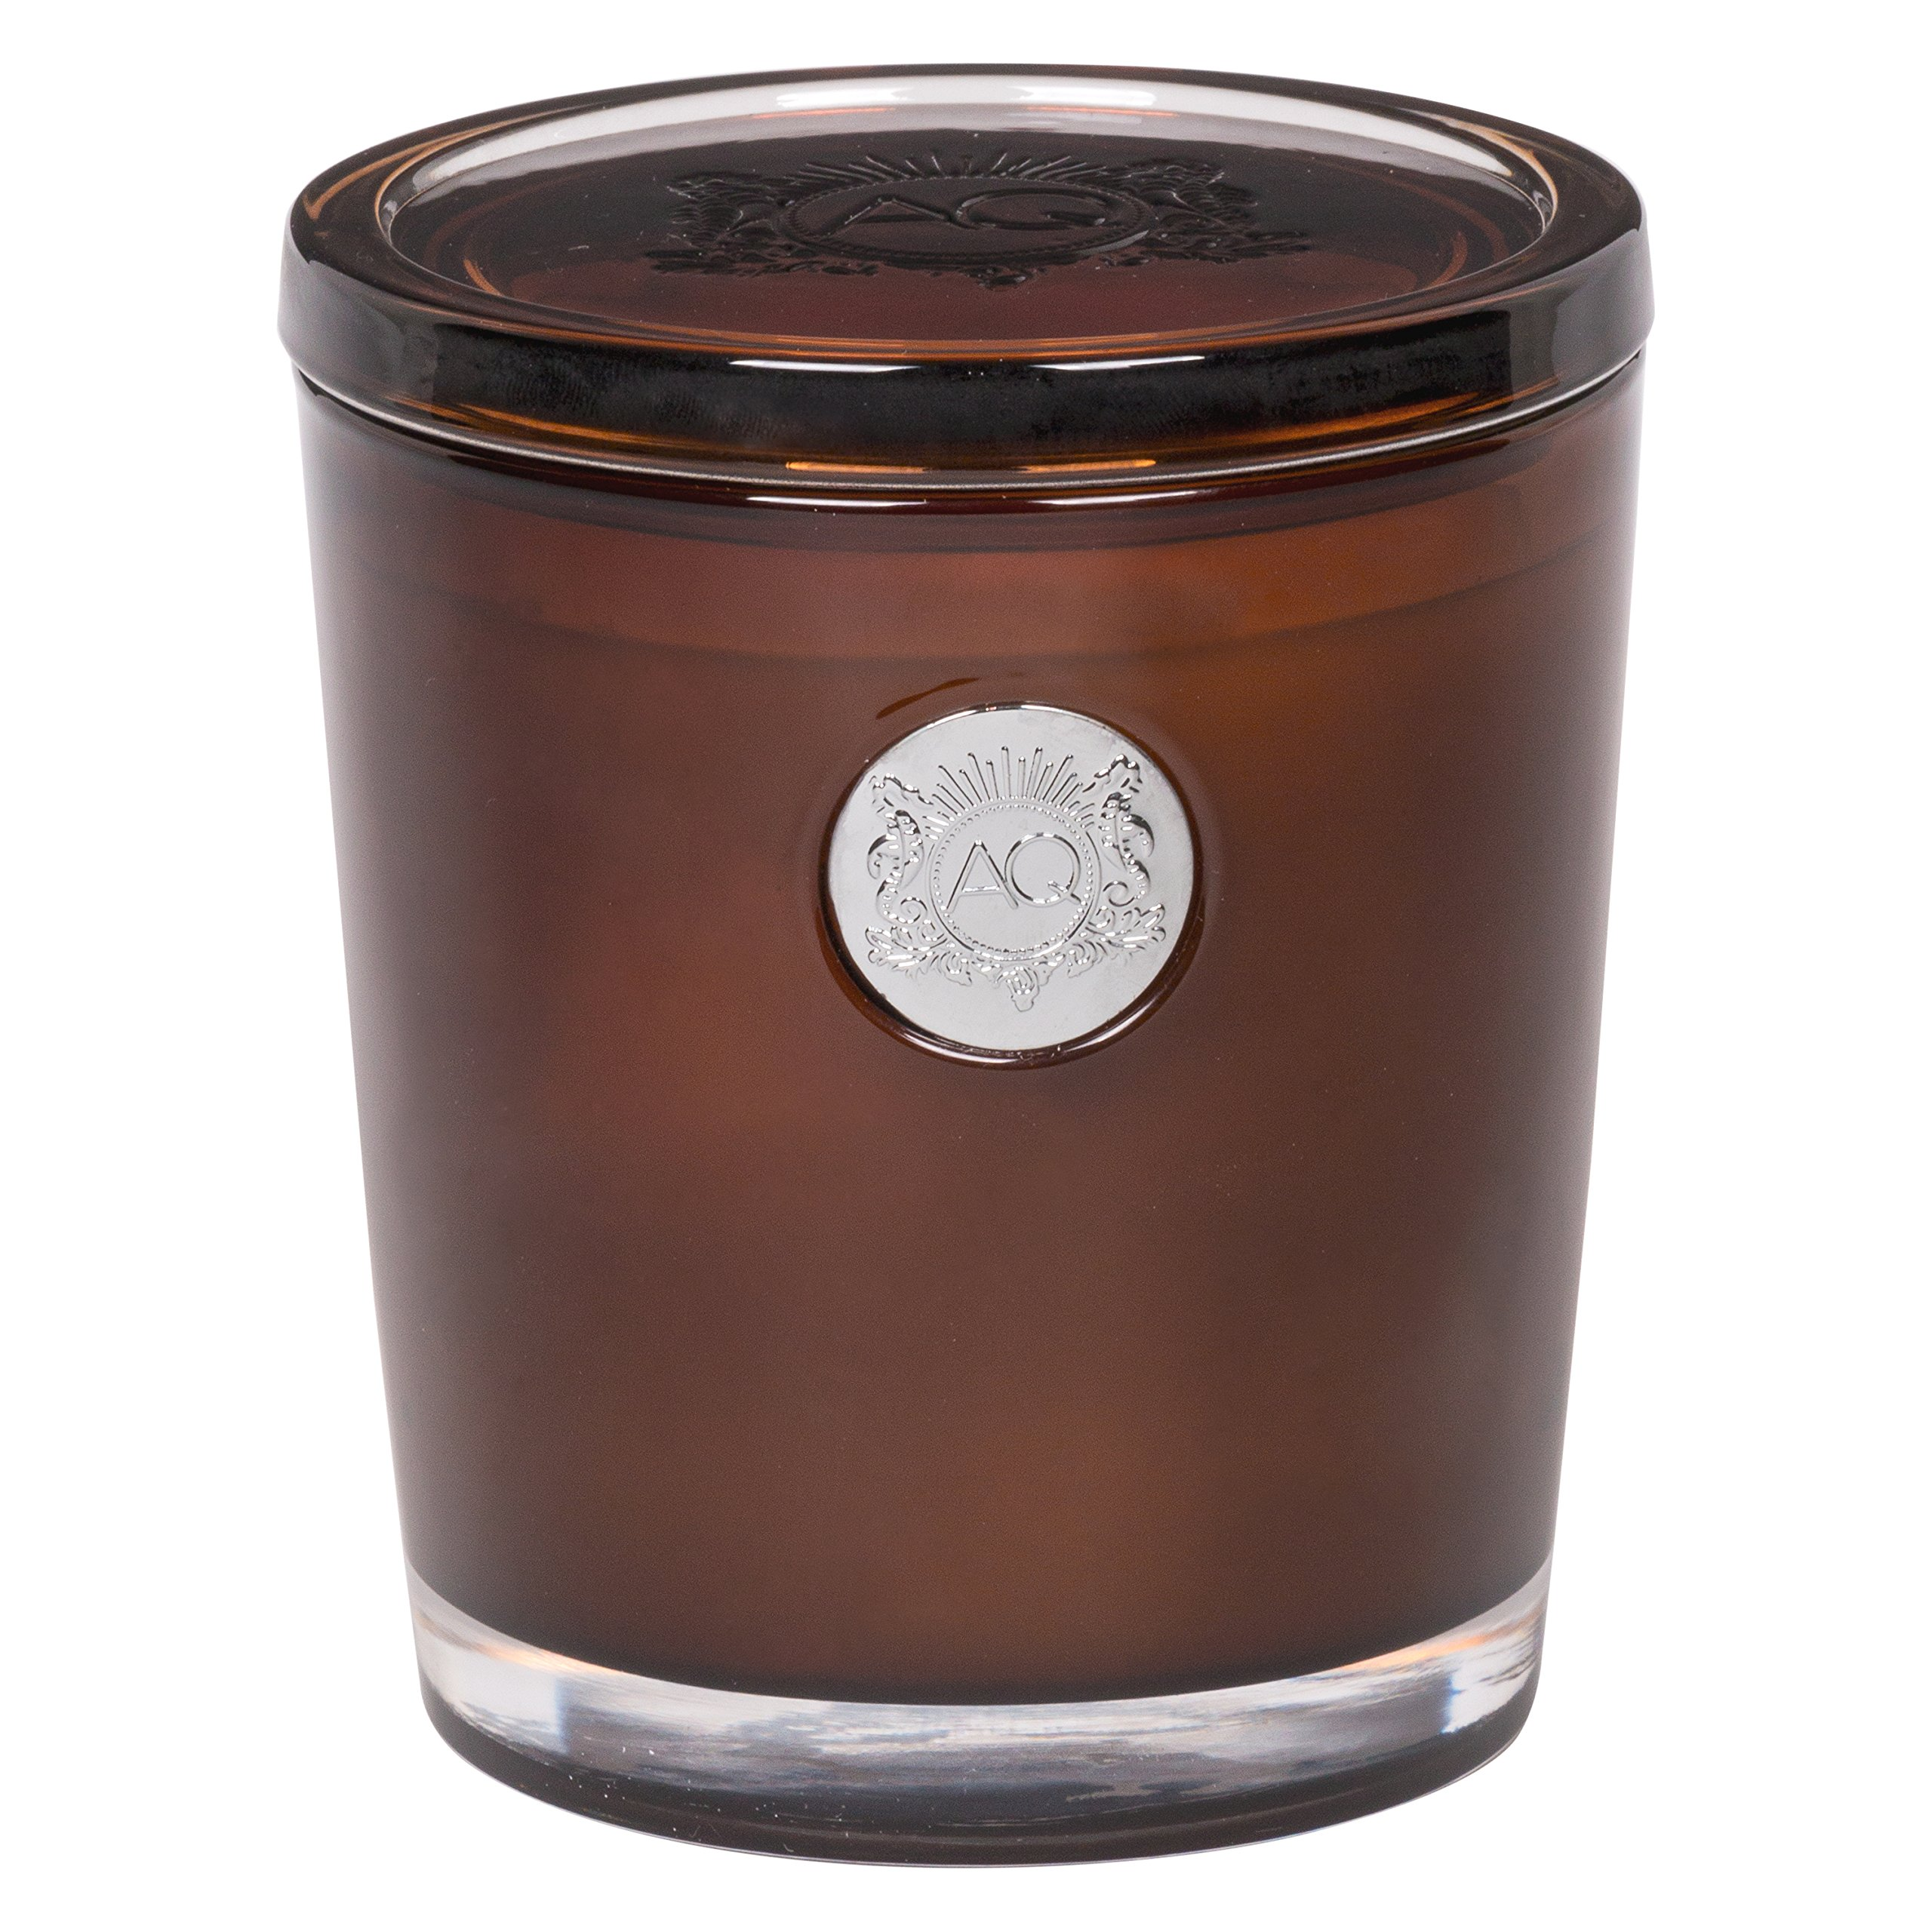 Aquiesse Portfolio Collection Large Candle - Luxe Linen (11 oz)